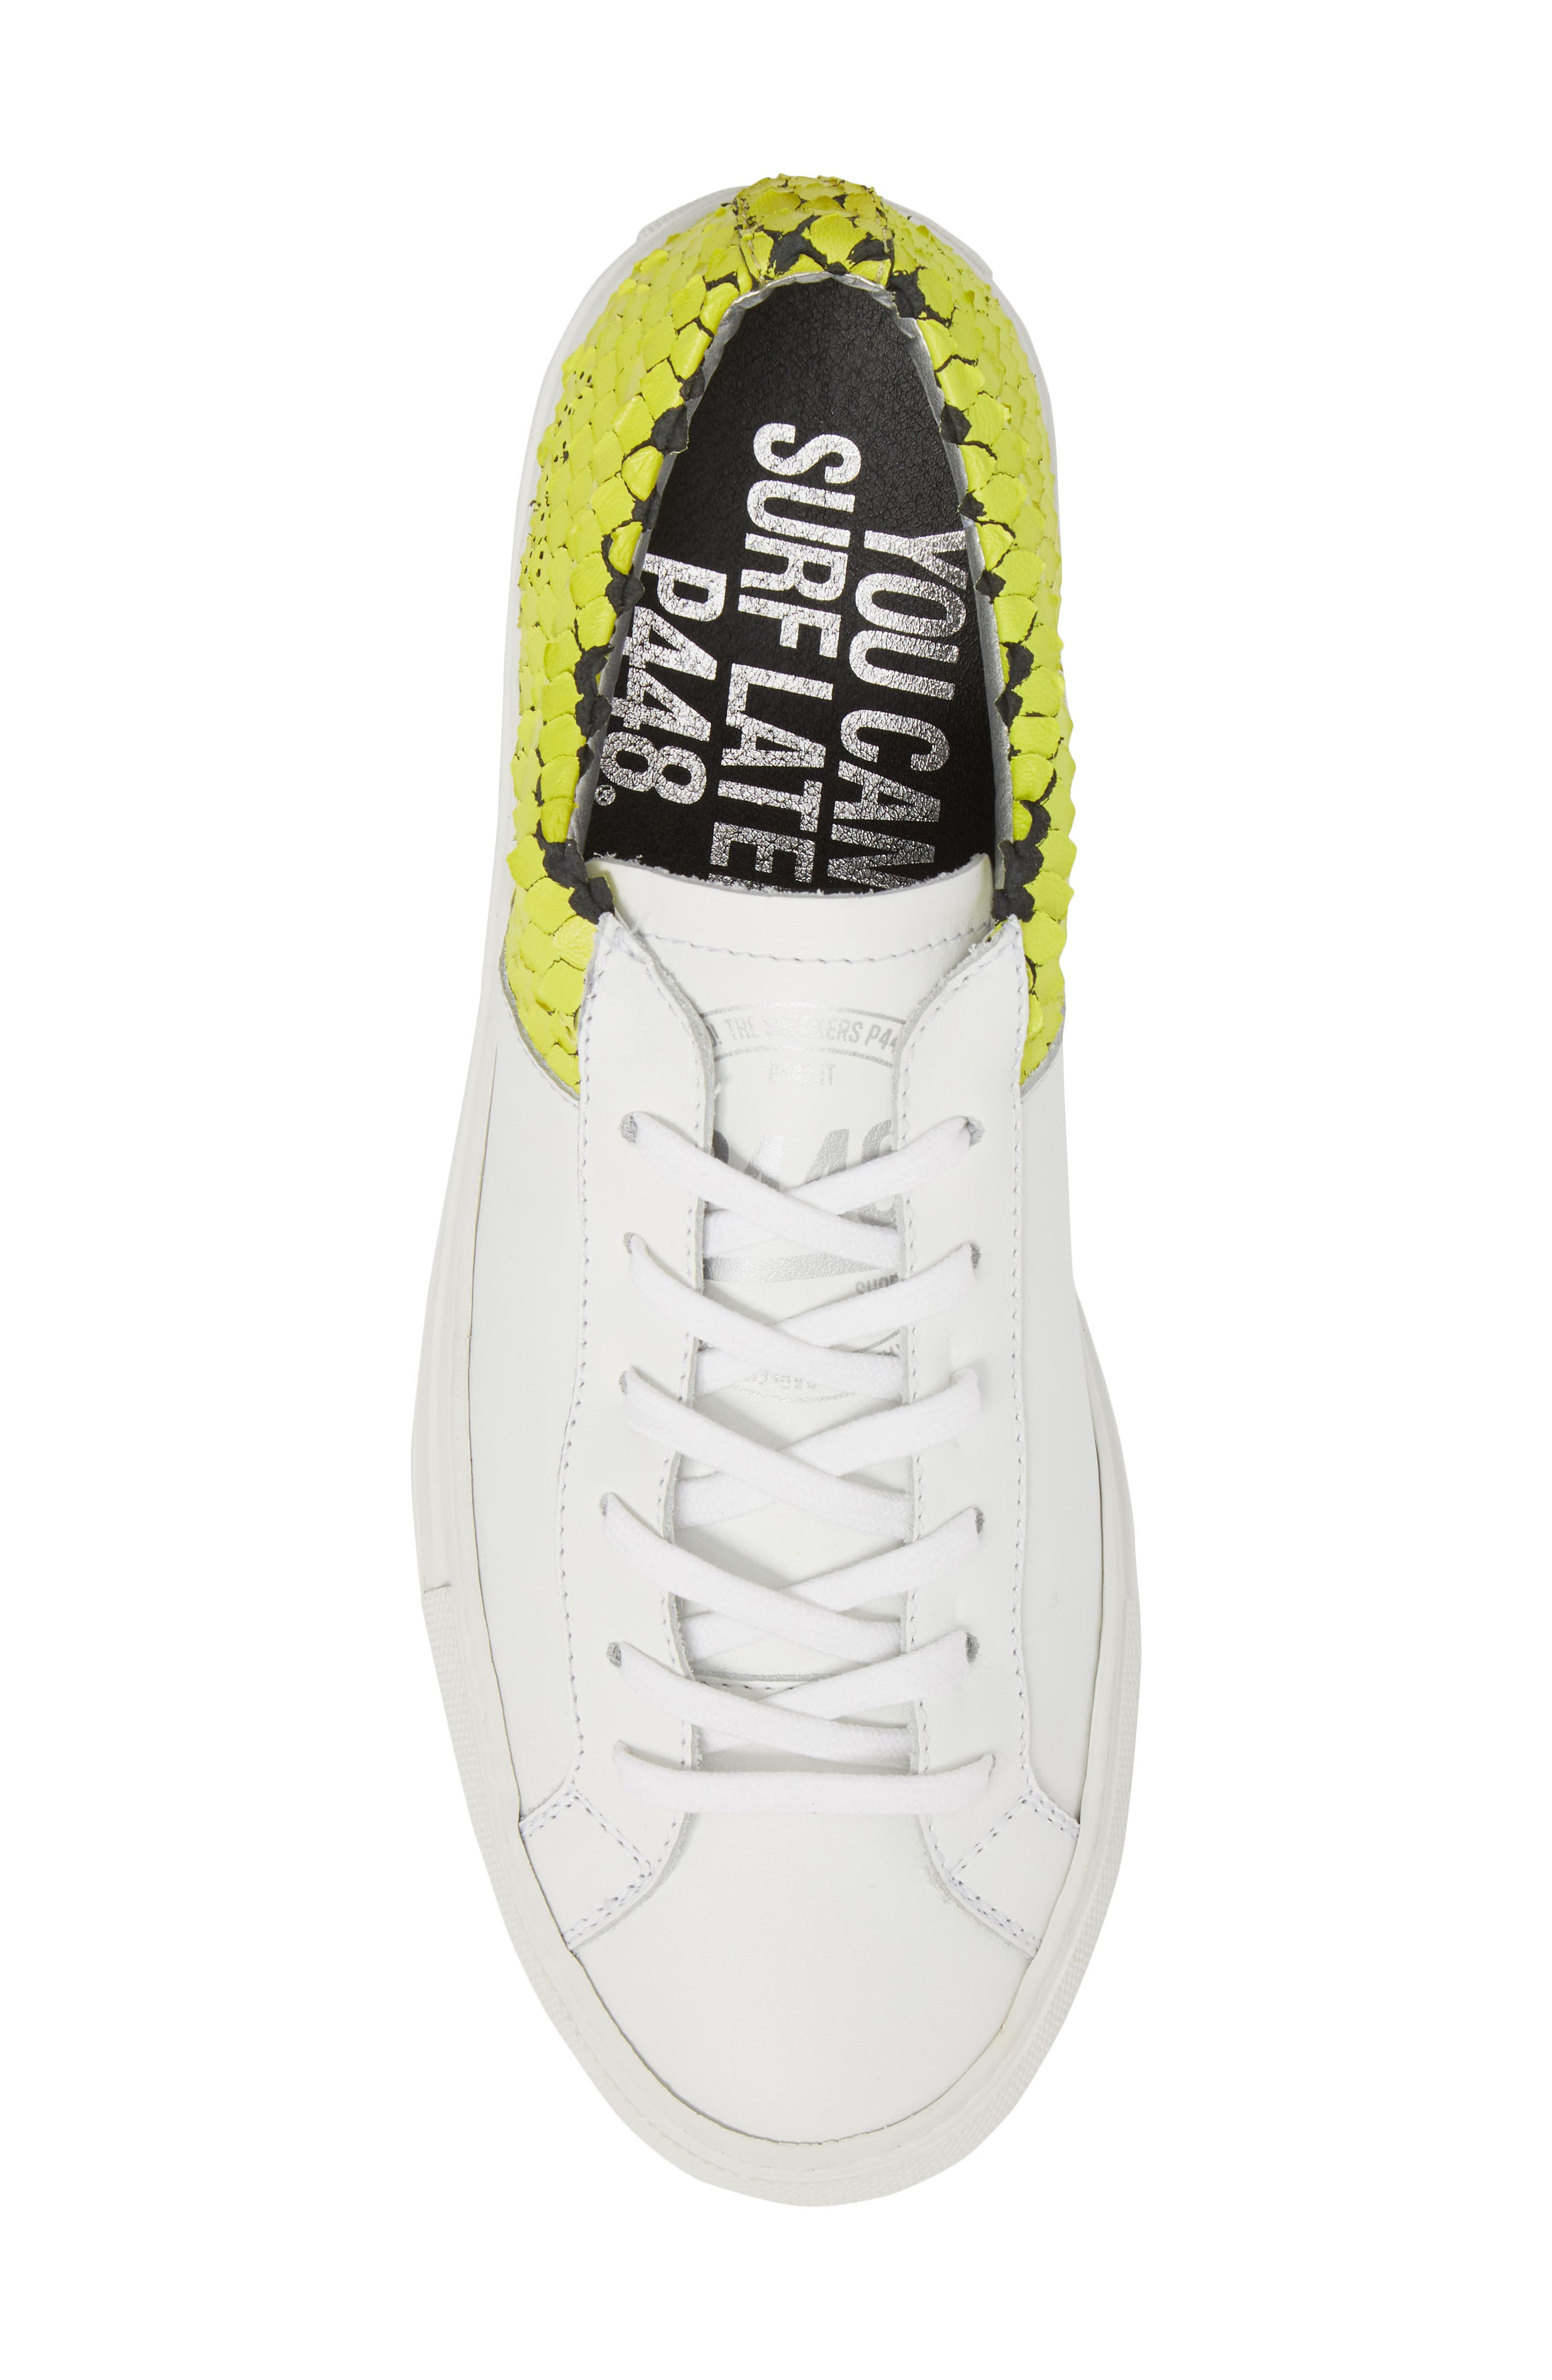 Onec Textured Low Top Sneaker,                             Alternate thumbnail 5, color,                             Python White